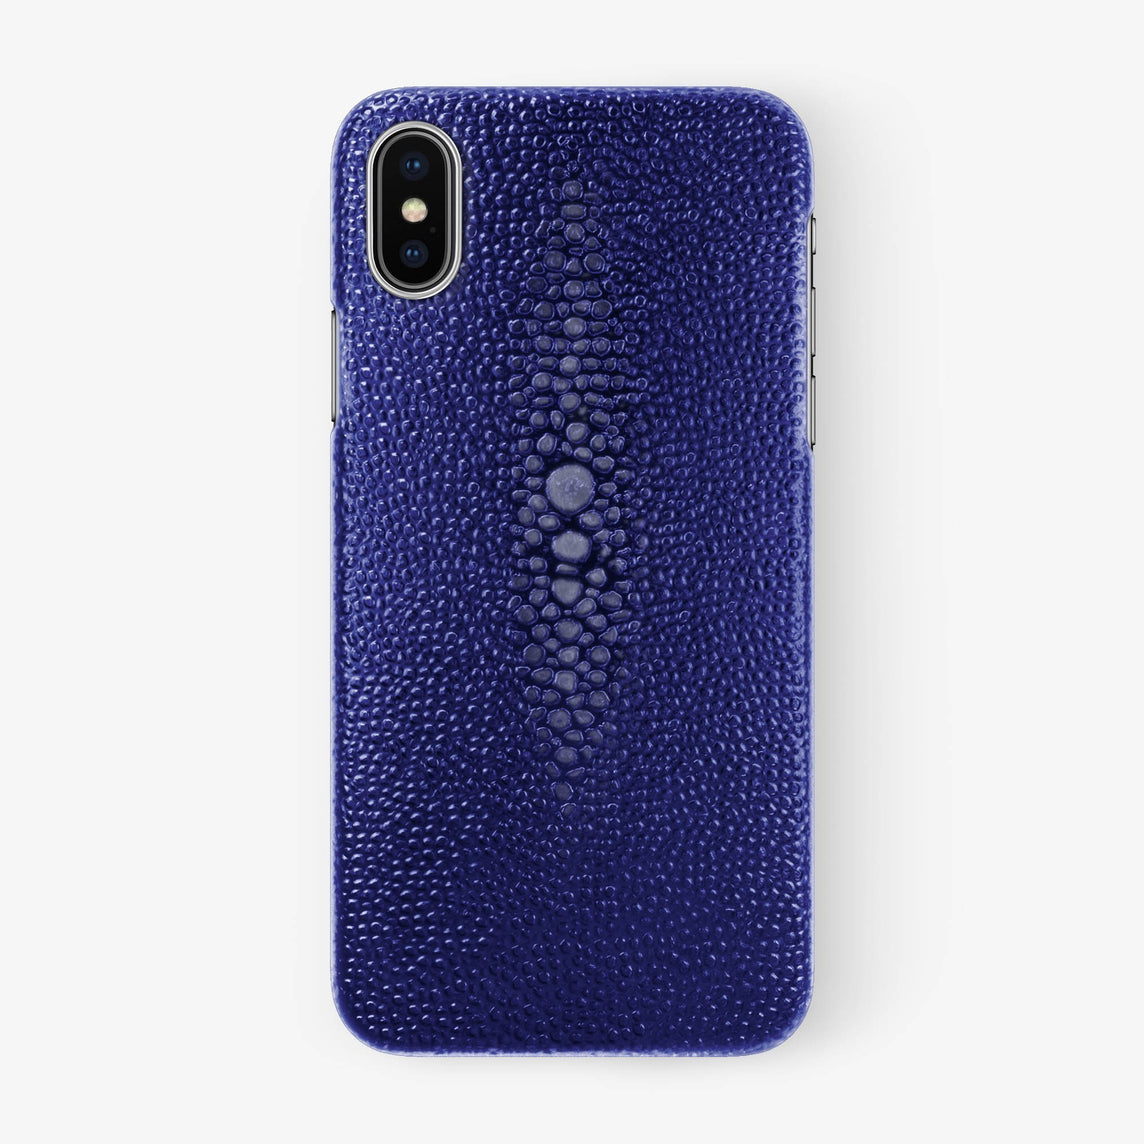 Blue Stingray iPhone Case for iPhone XS Max finishing stainless steel - Hadoro Luxury Cases